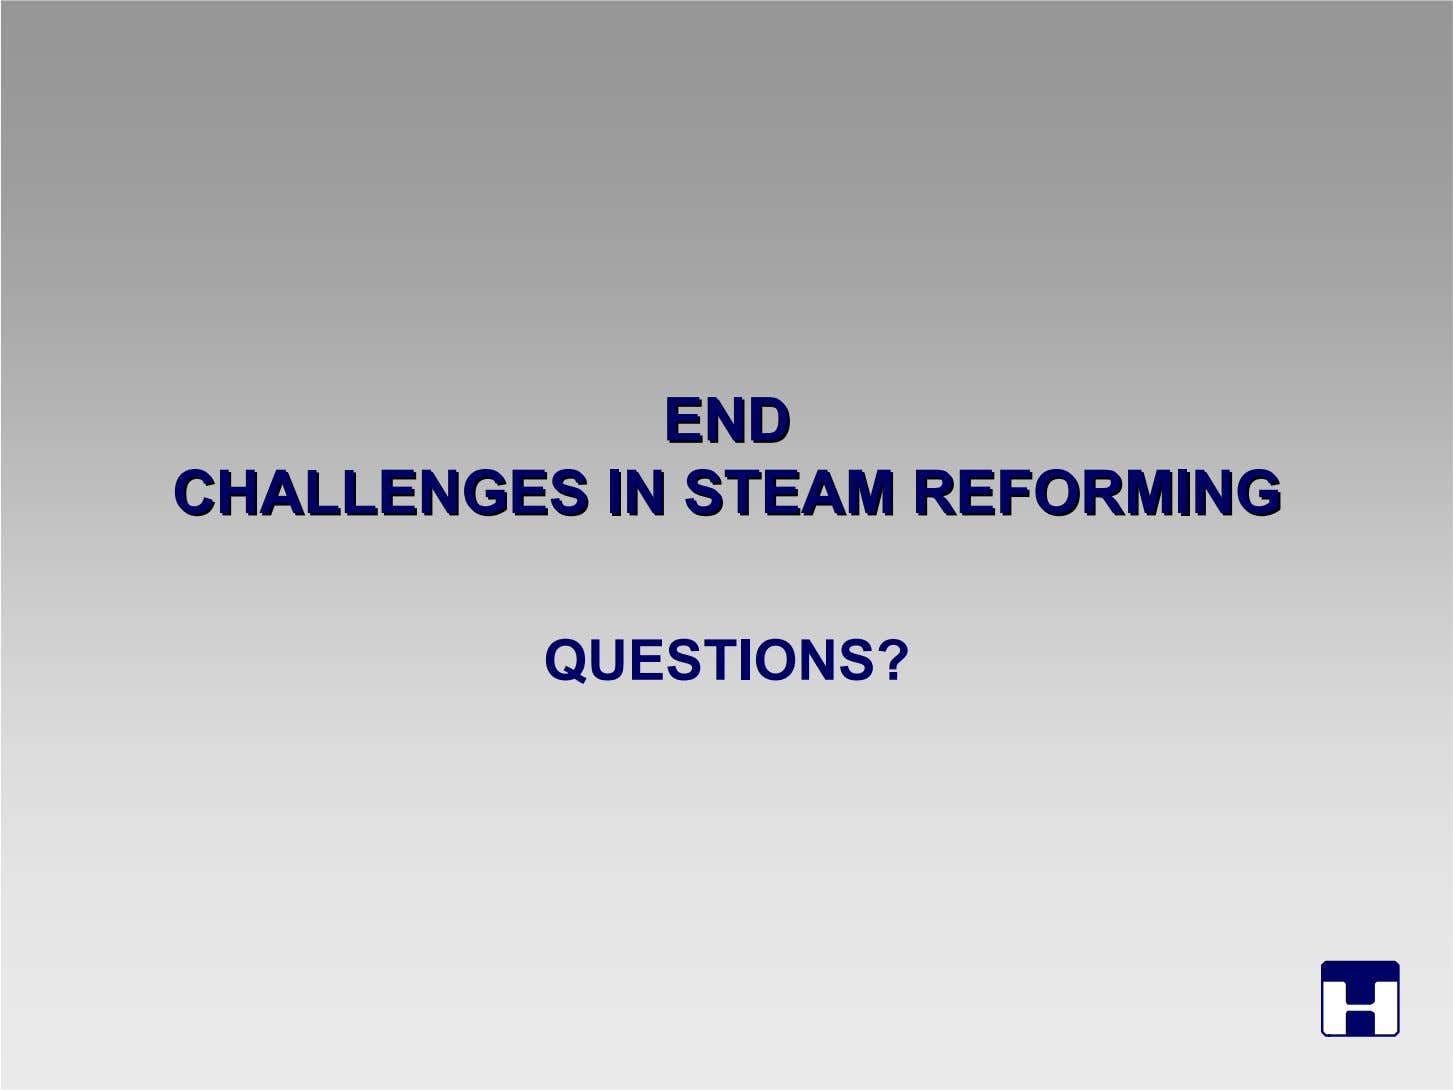 ENDEND CHALLENGESCHALLENGES ININ STEAMSTEAM REFORMINGREFORMING QUESTIONS?